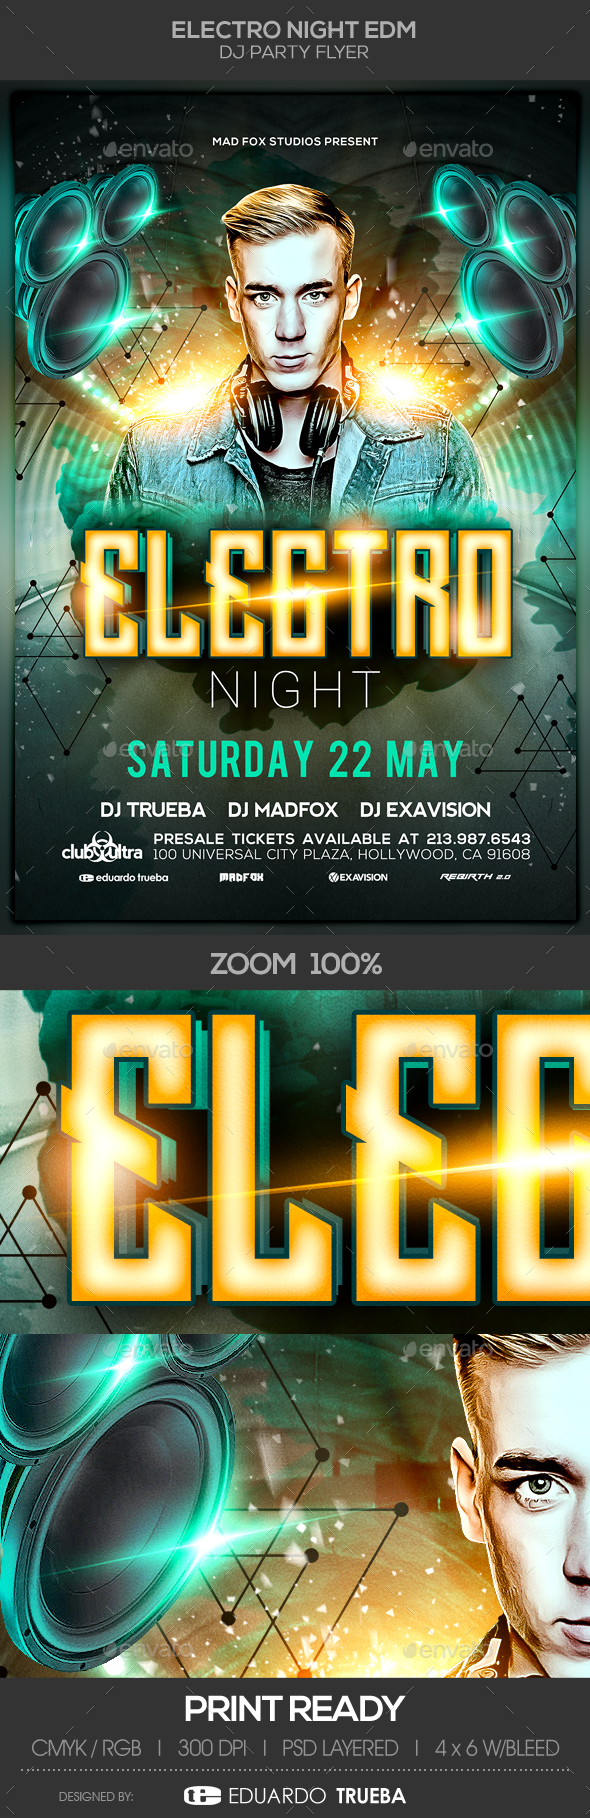 Electro Night EDM Dj Party Flyer - Clubs & Parties Events